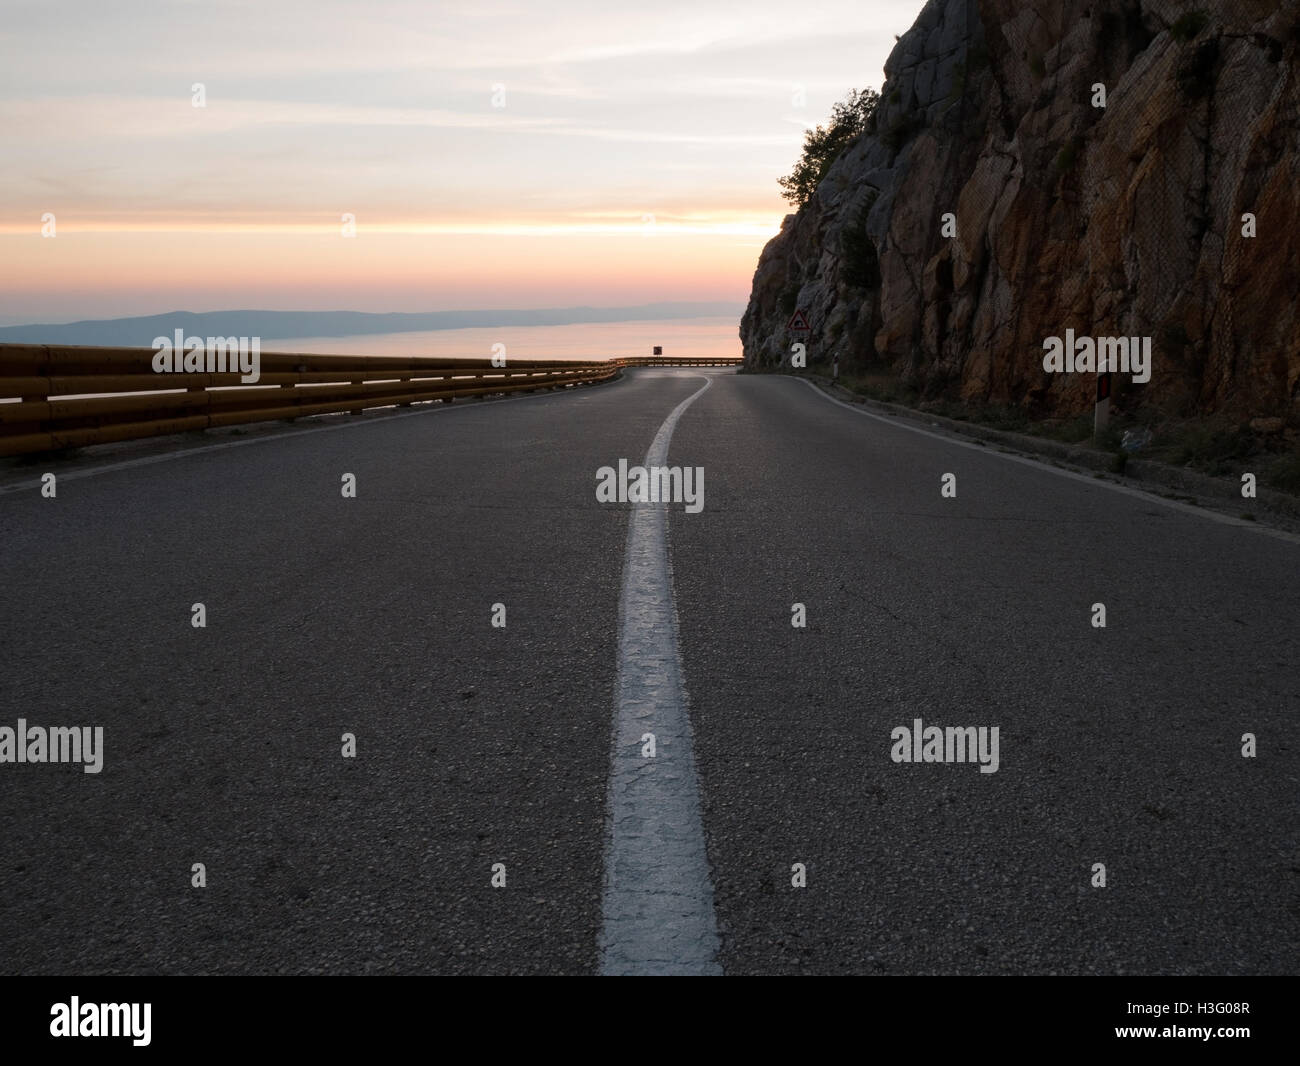 Asphalt mountain road above the sea at sunset - Stock Image